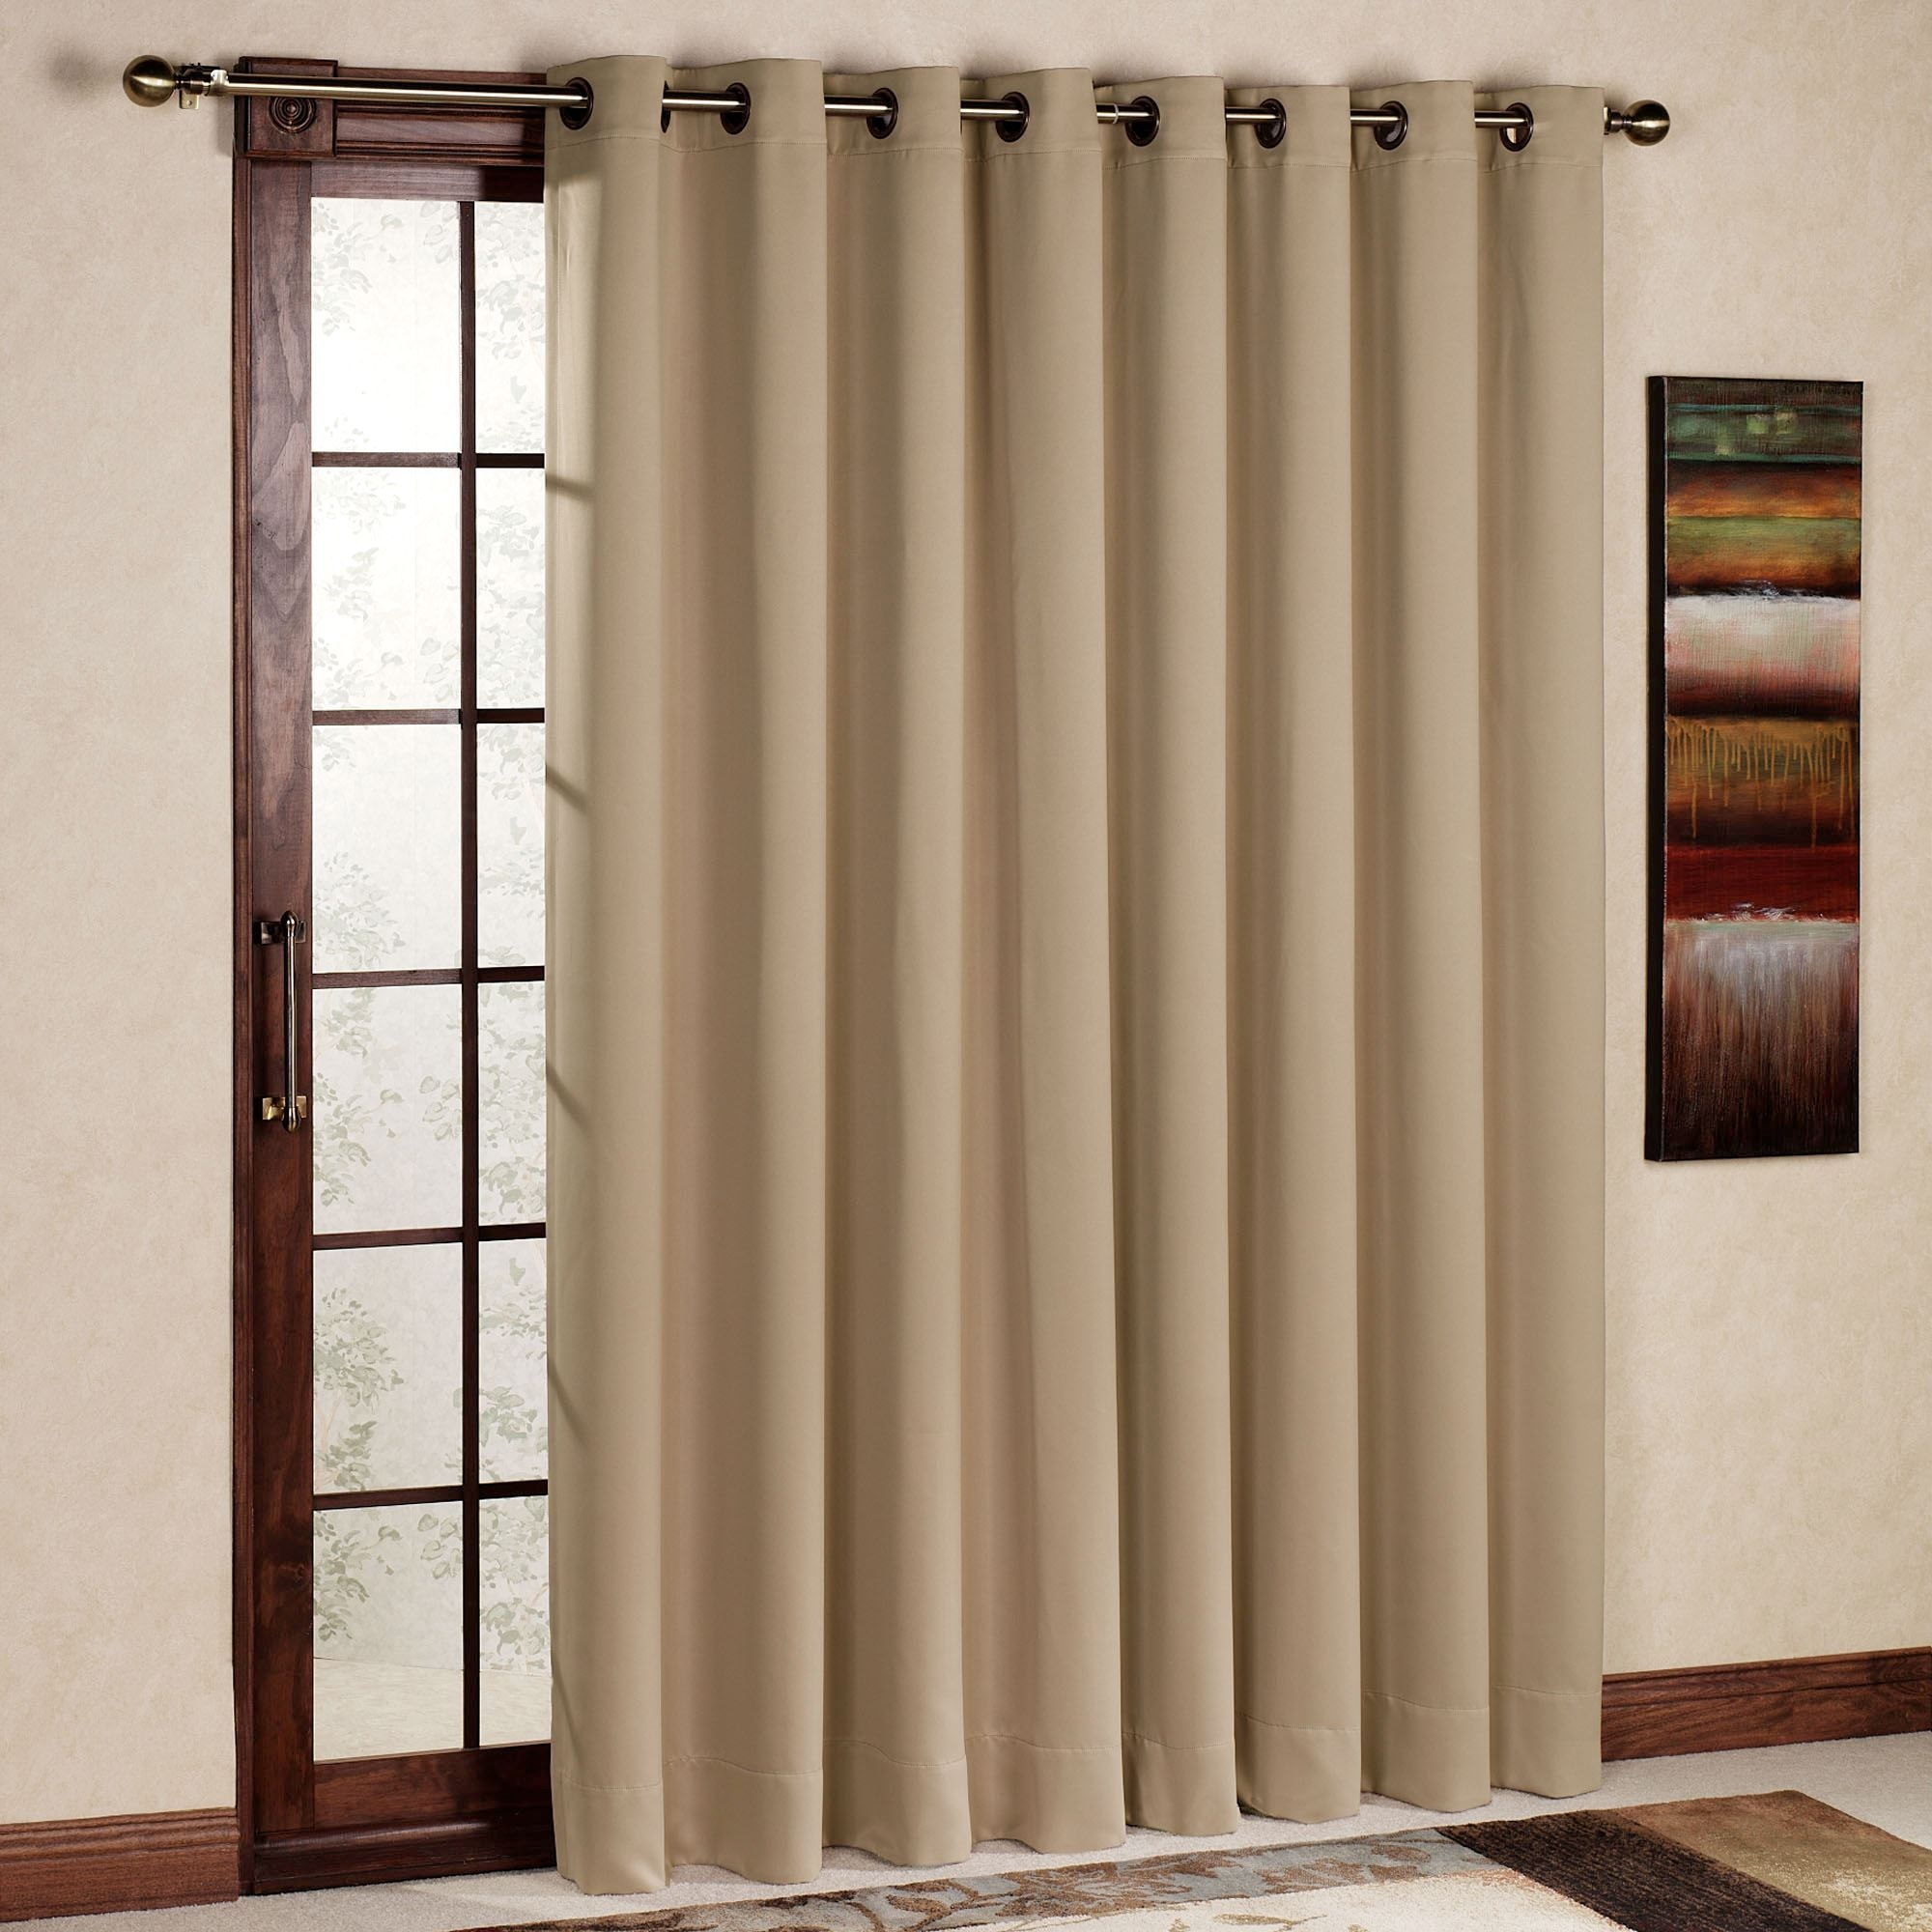 Blackout Shades Sliding Glass Door